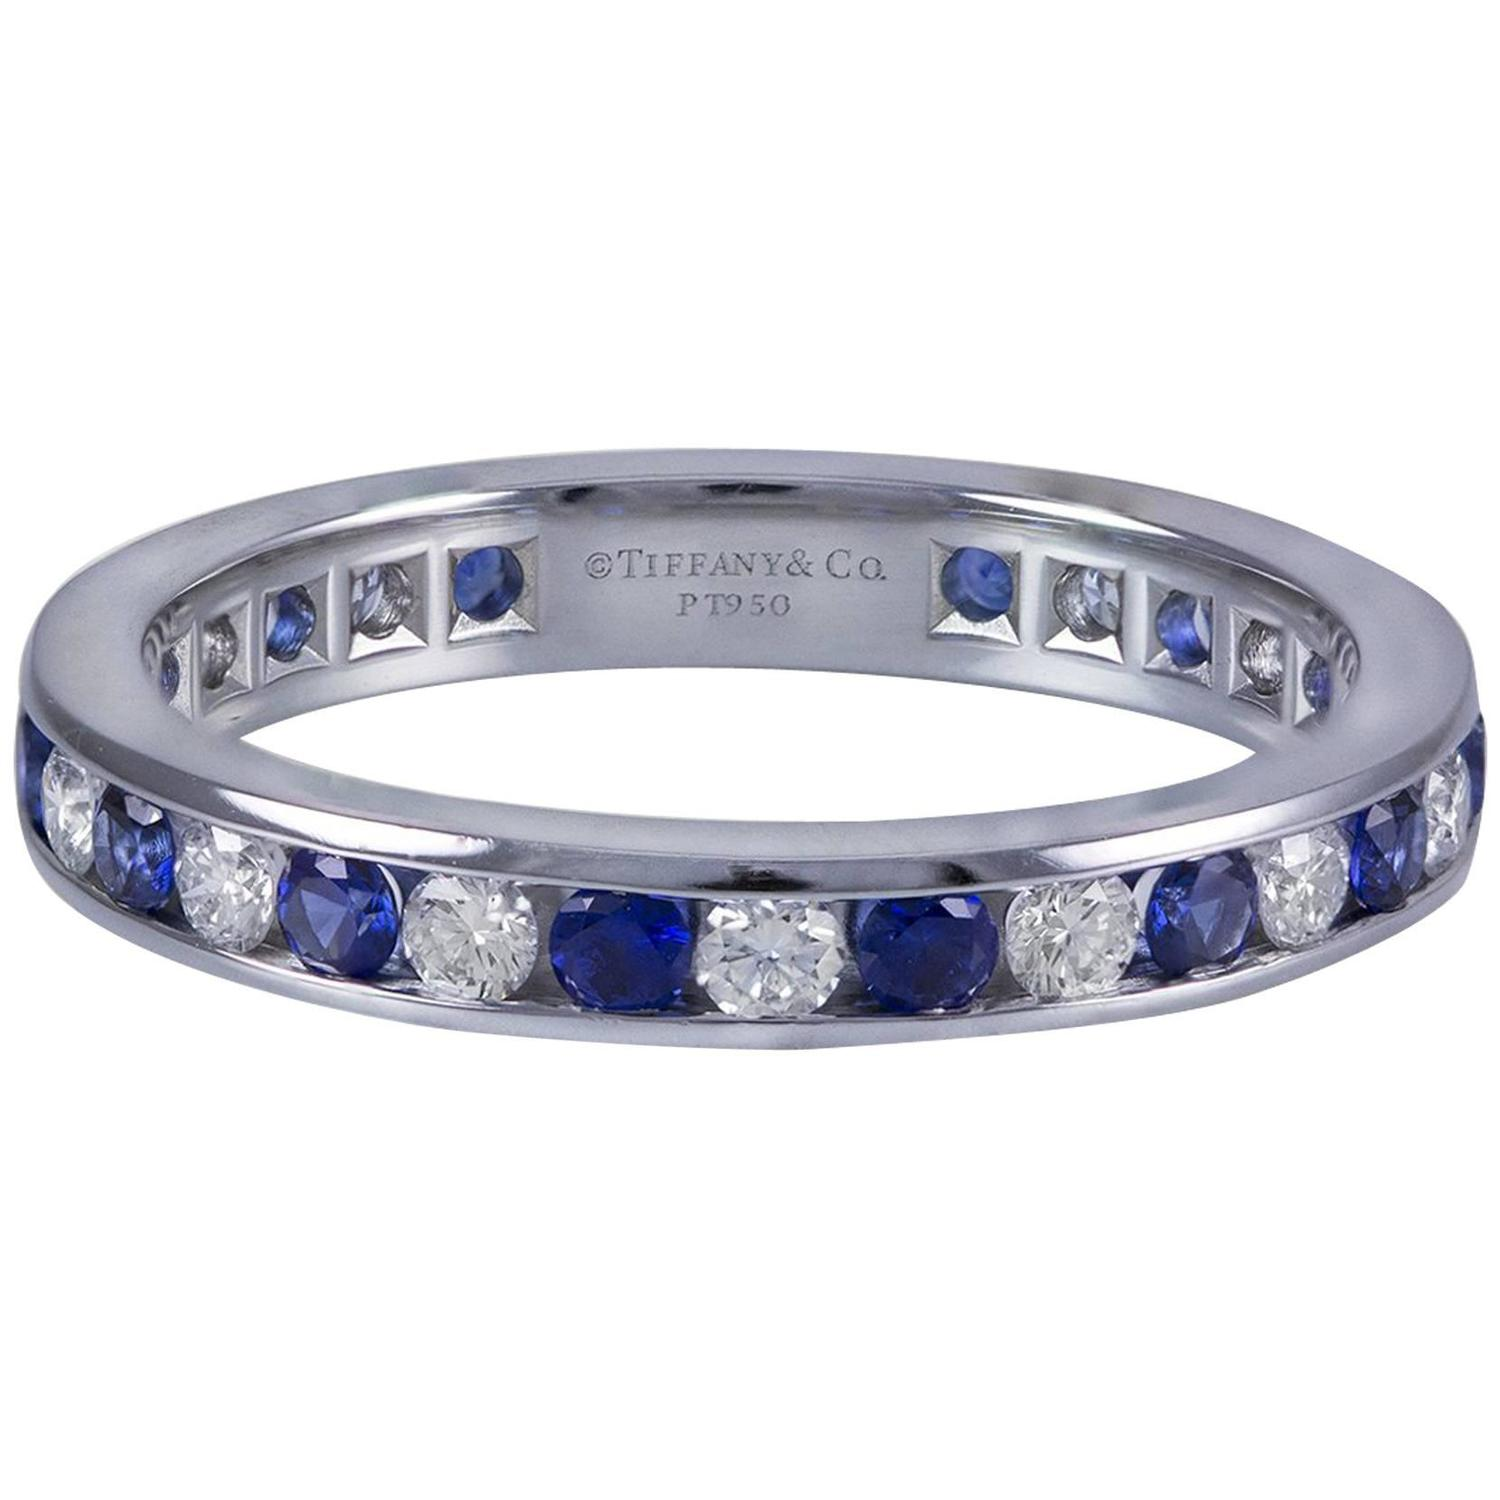 tiffany and co sapphire diamond platinum wedding band ring for